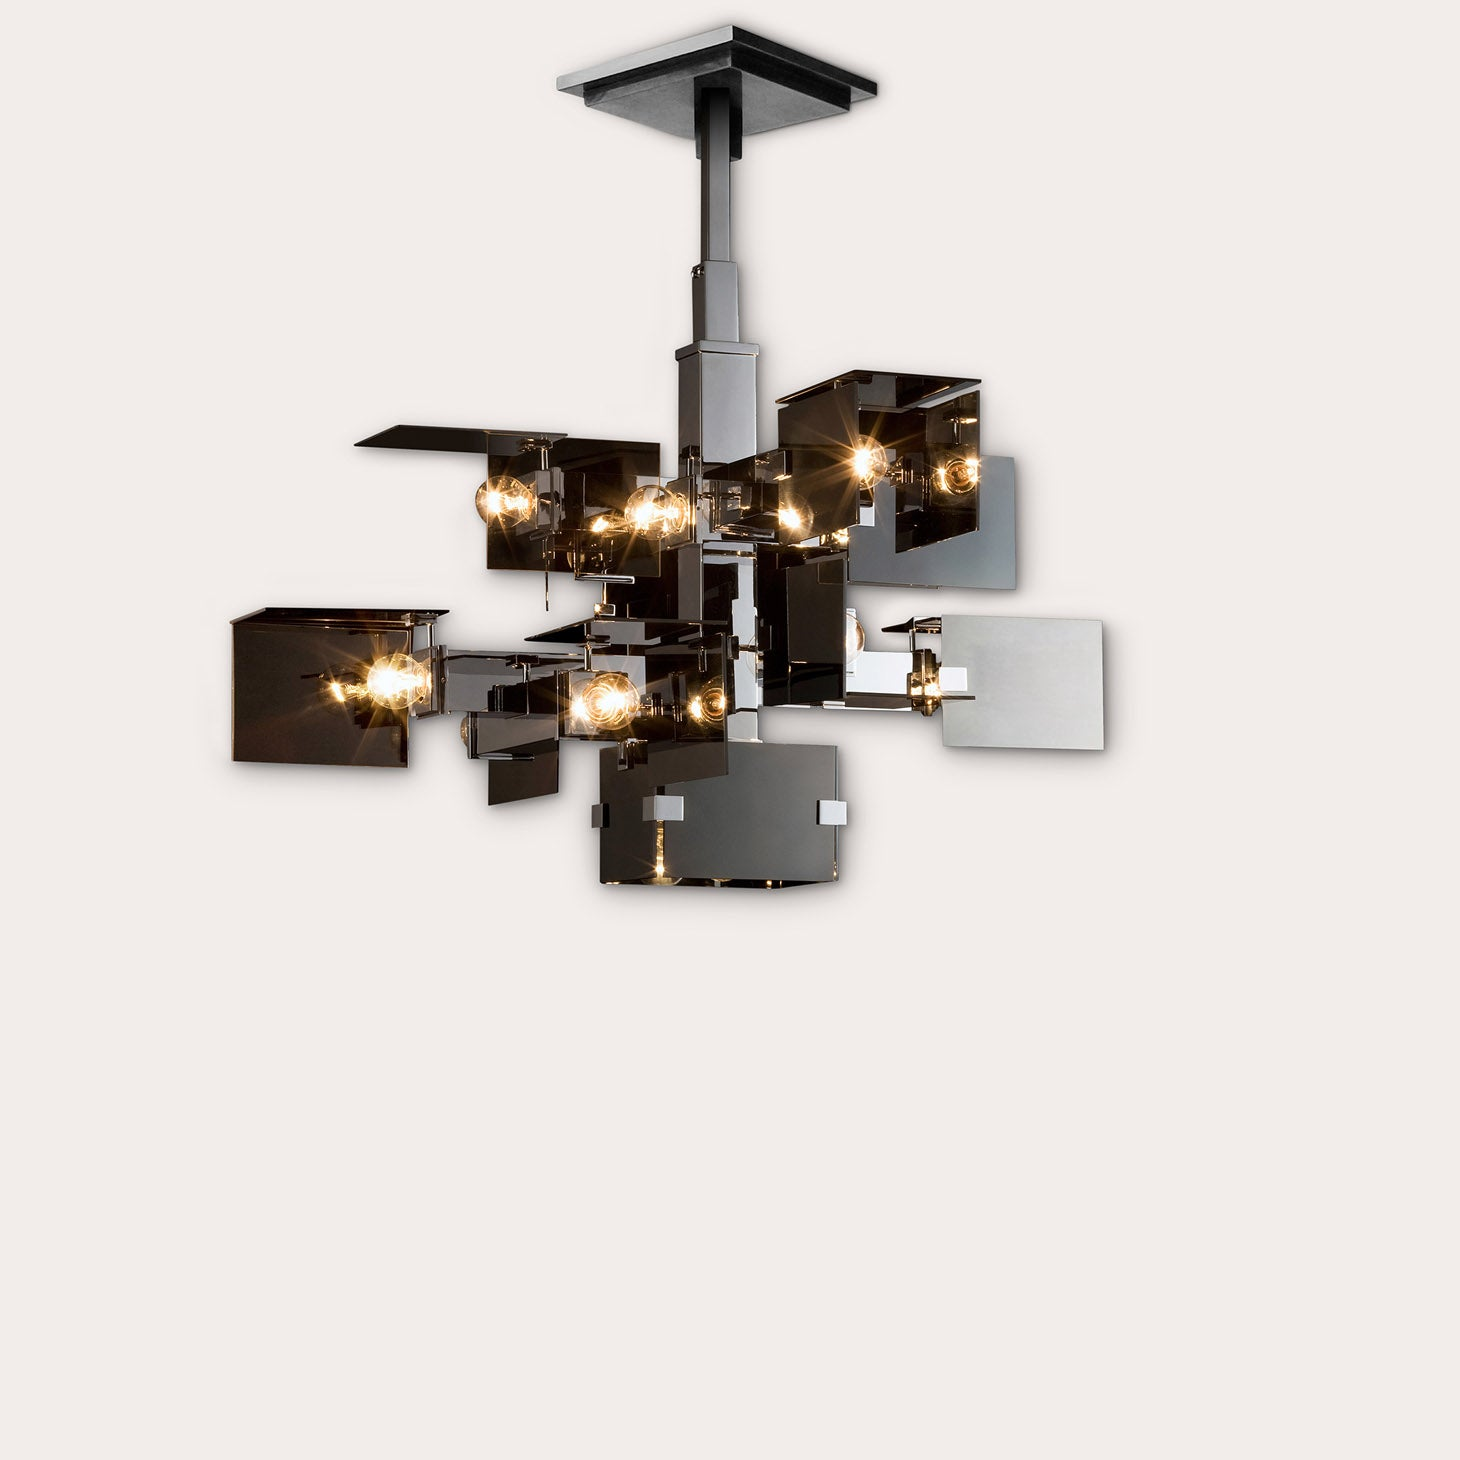 David Collins Chandelier Lighting Lobmeyr Designer Furniture Sku: 220-160-10035